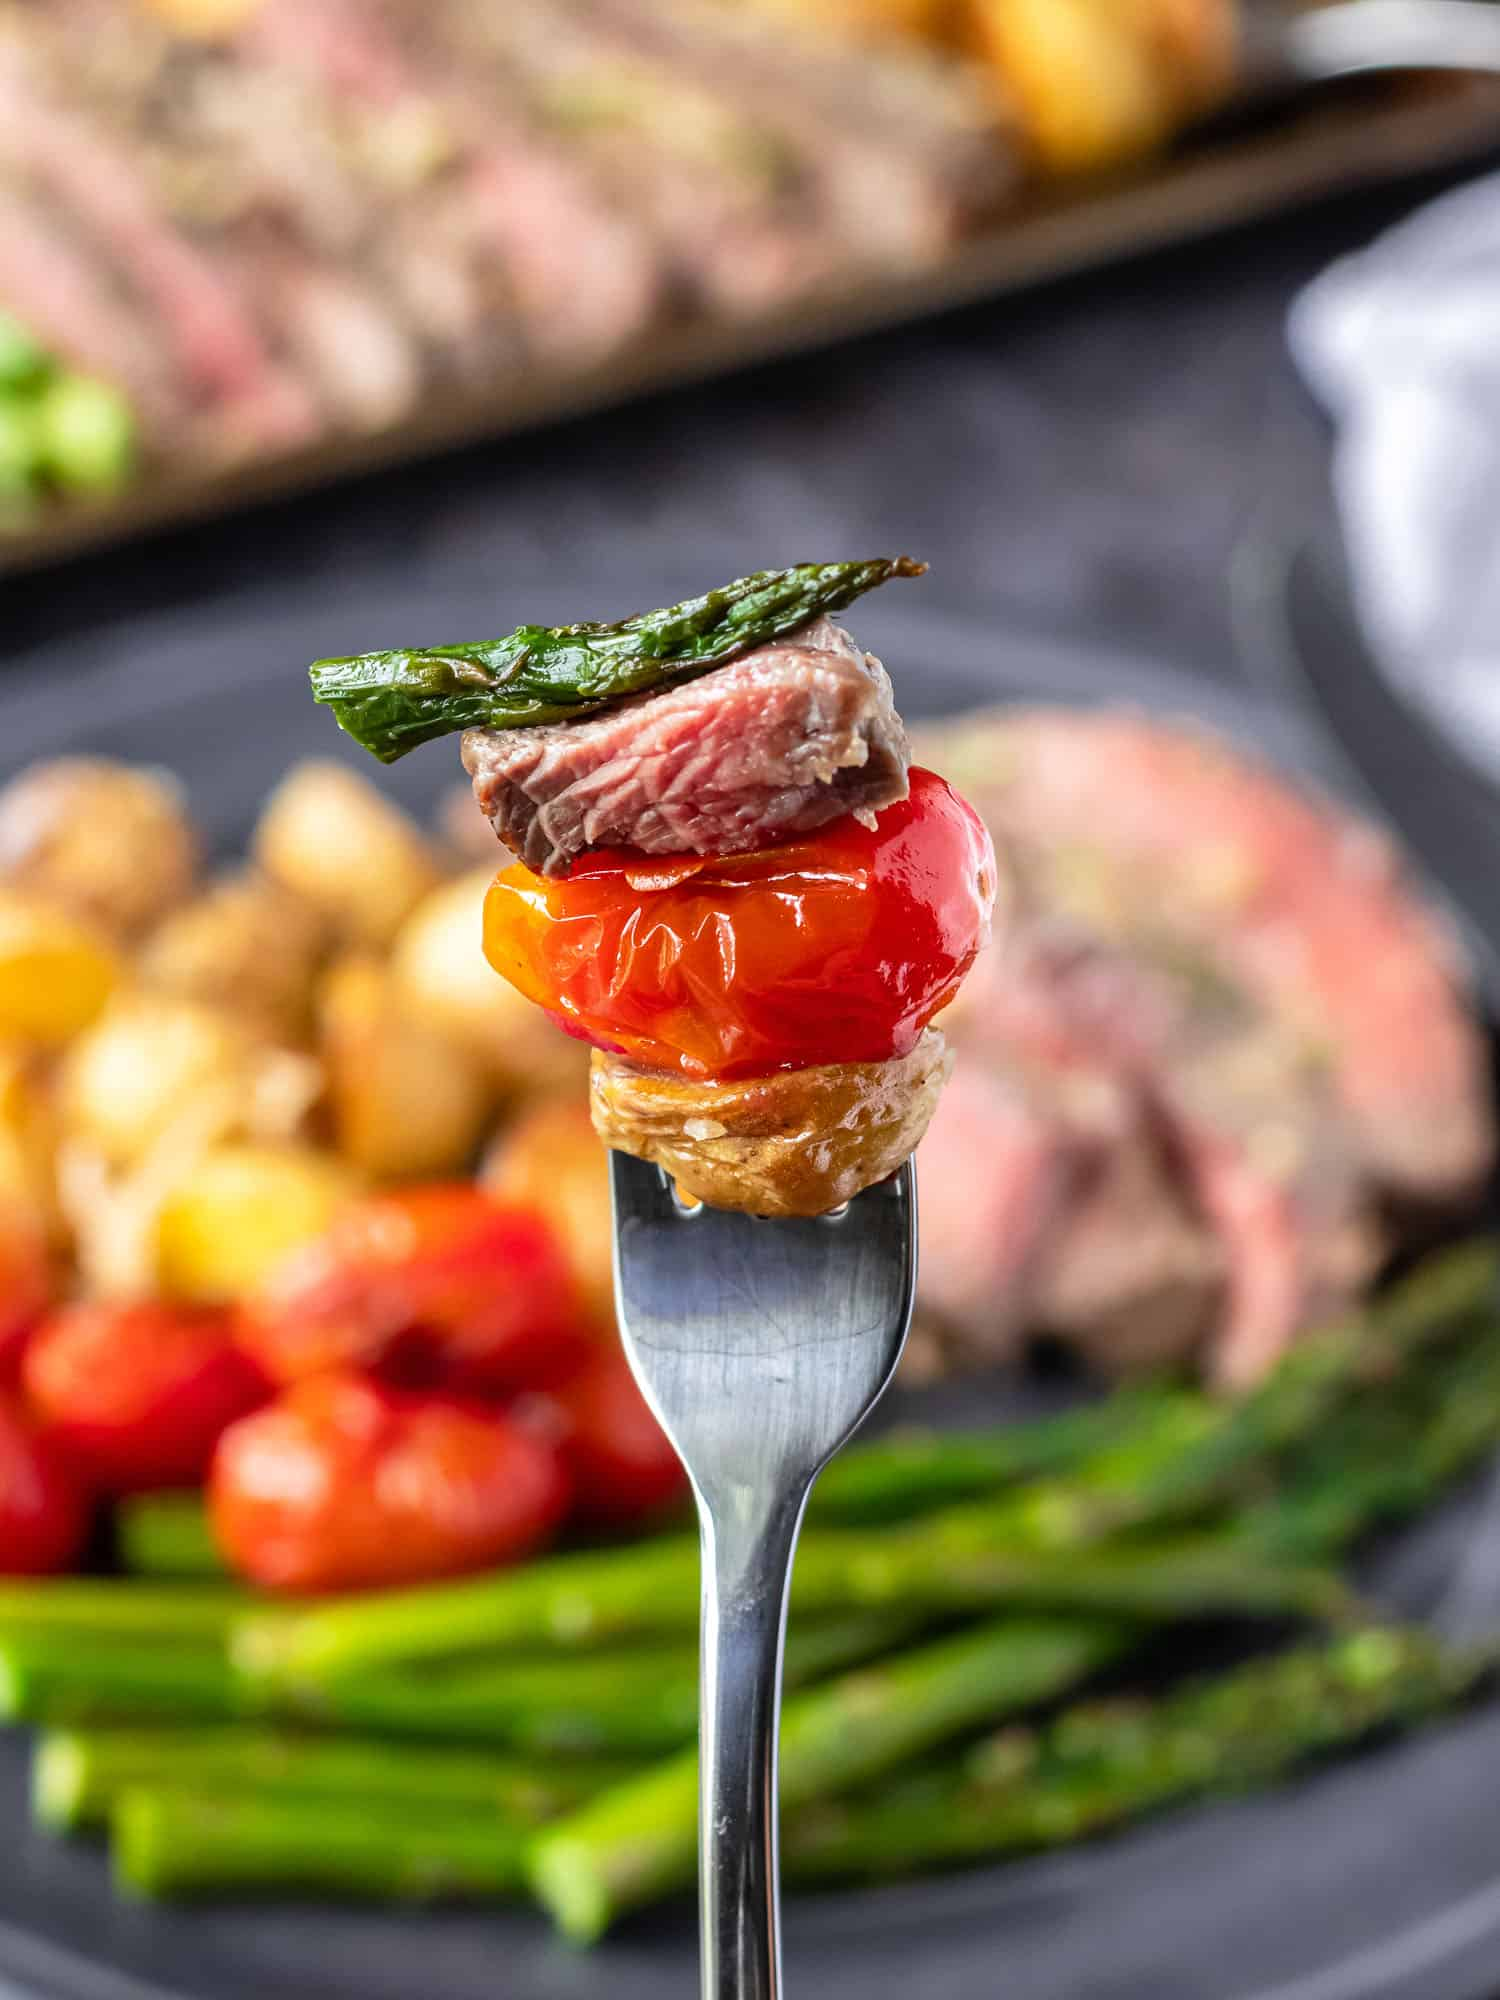 Steak on a fork with a tomato, potato, and asparagus.